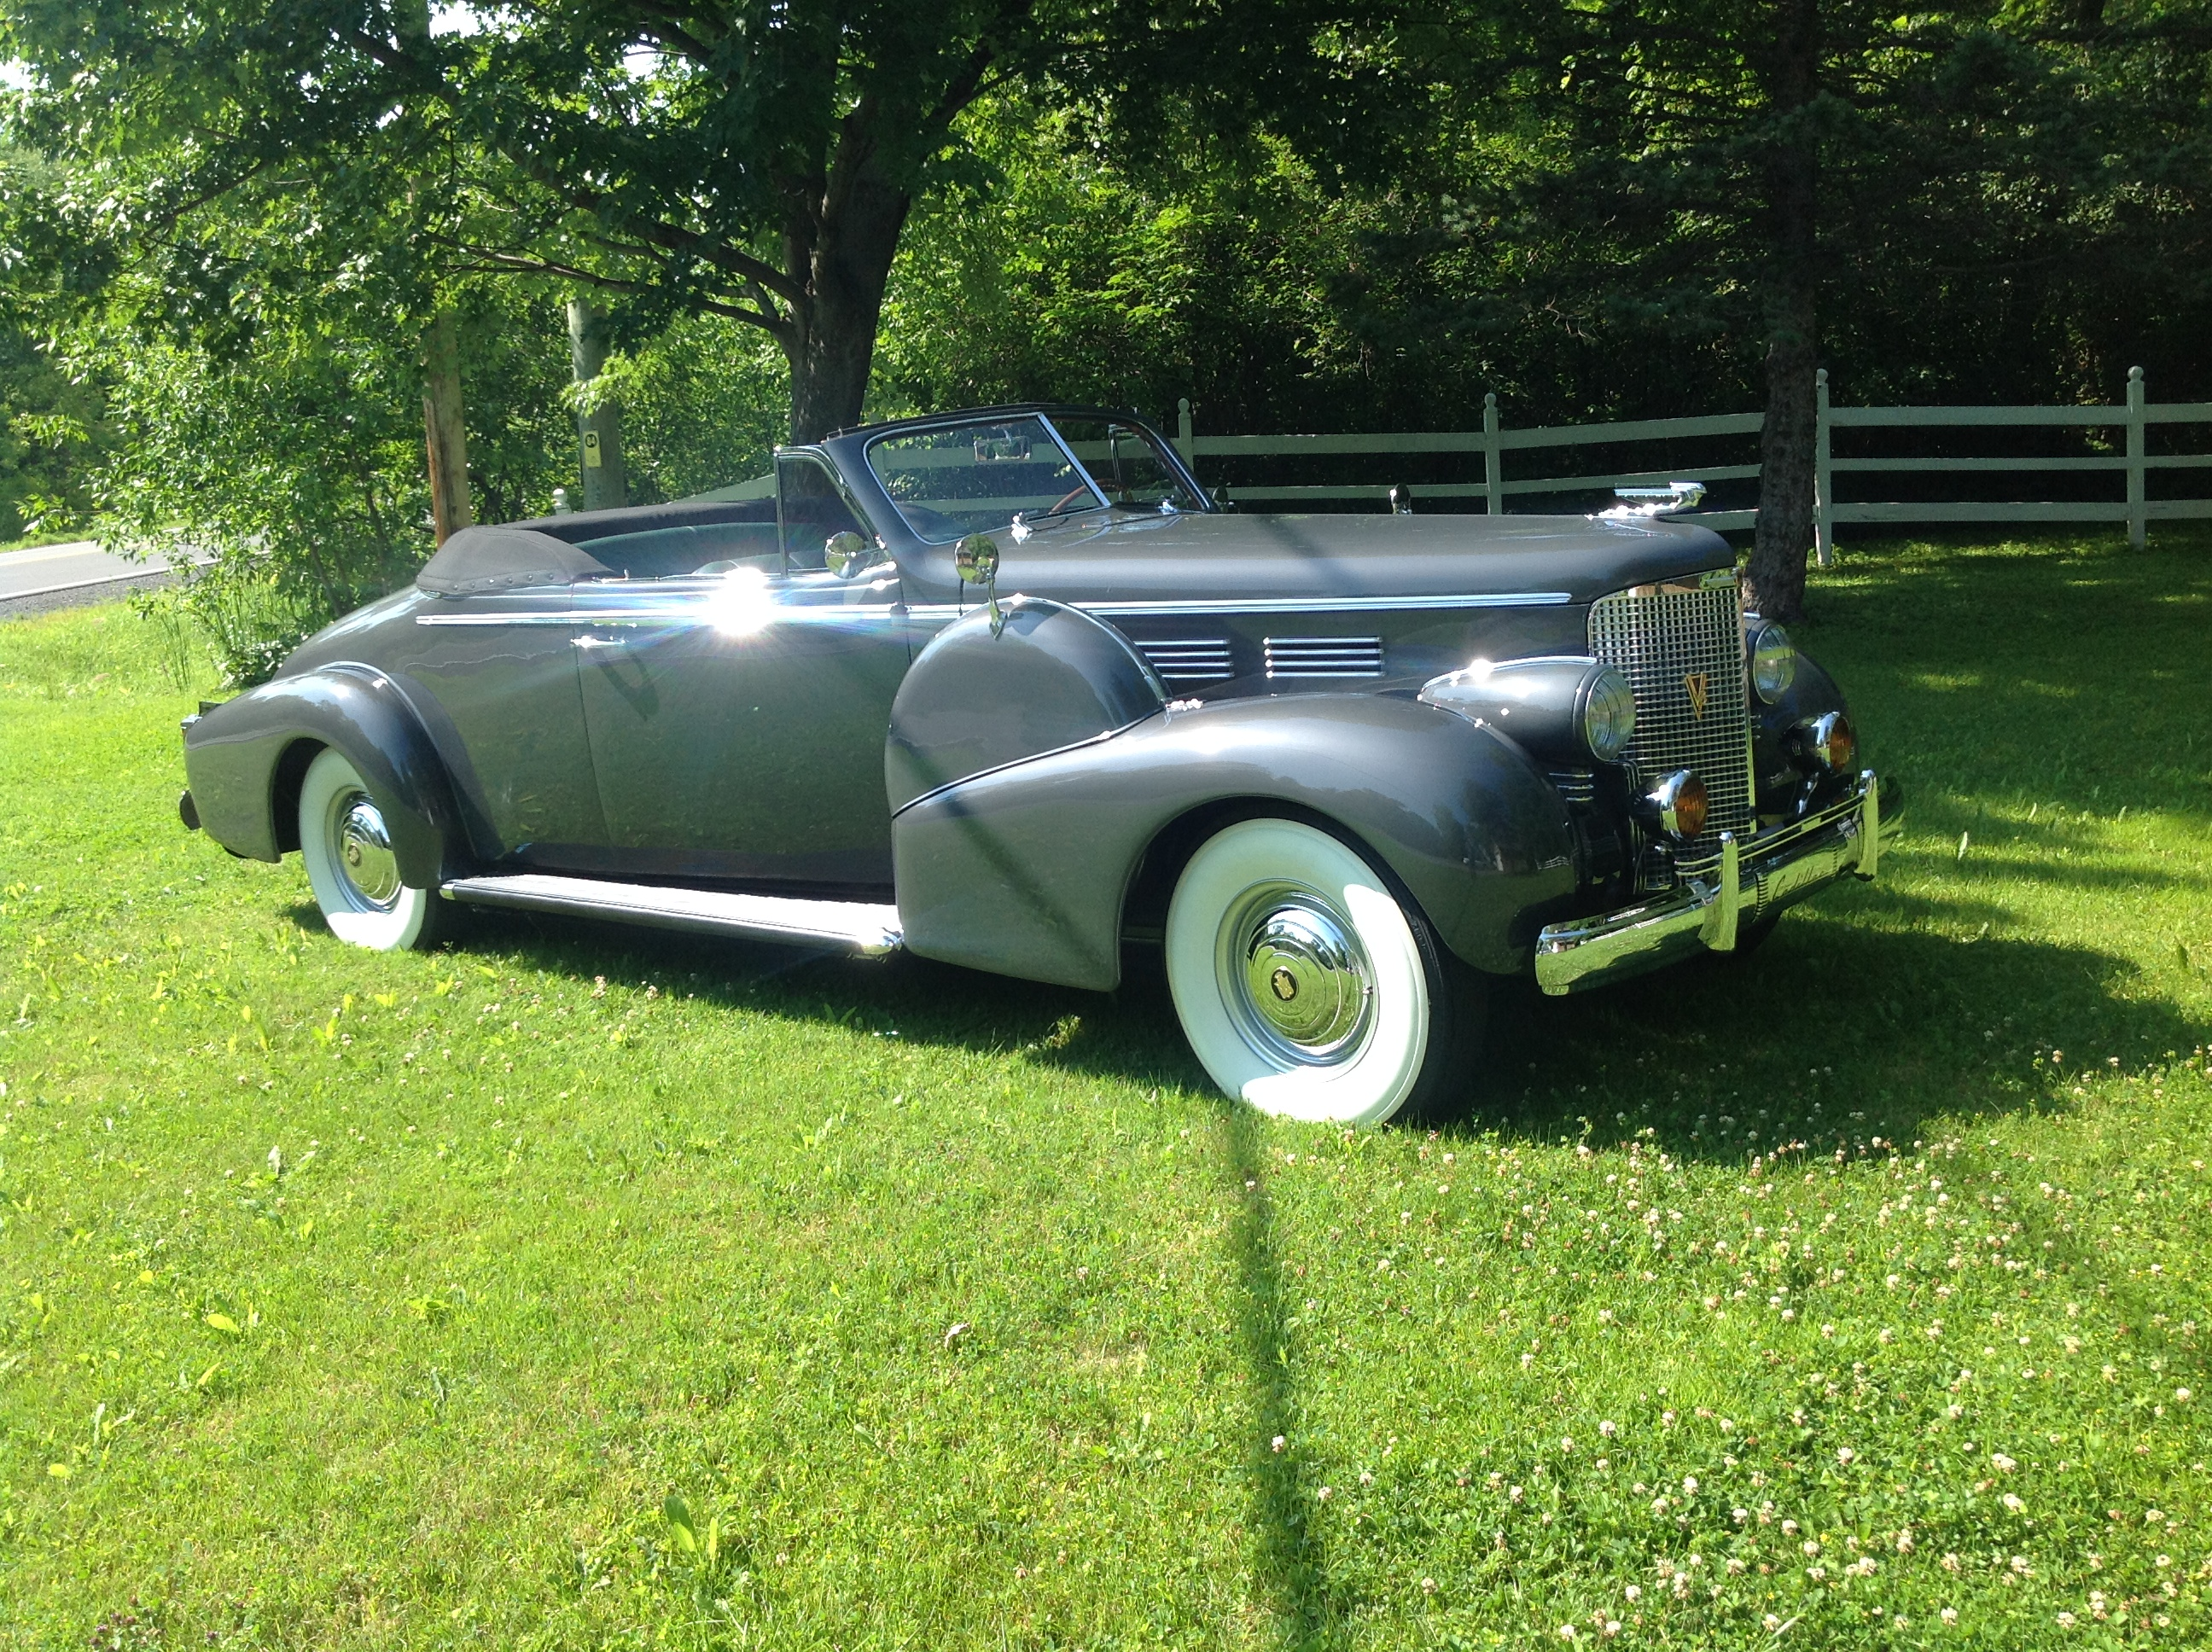 deville for coupe parts lawrence larry cadillac cars dsc sale